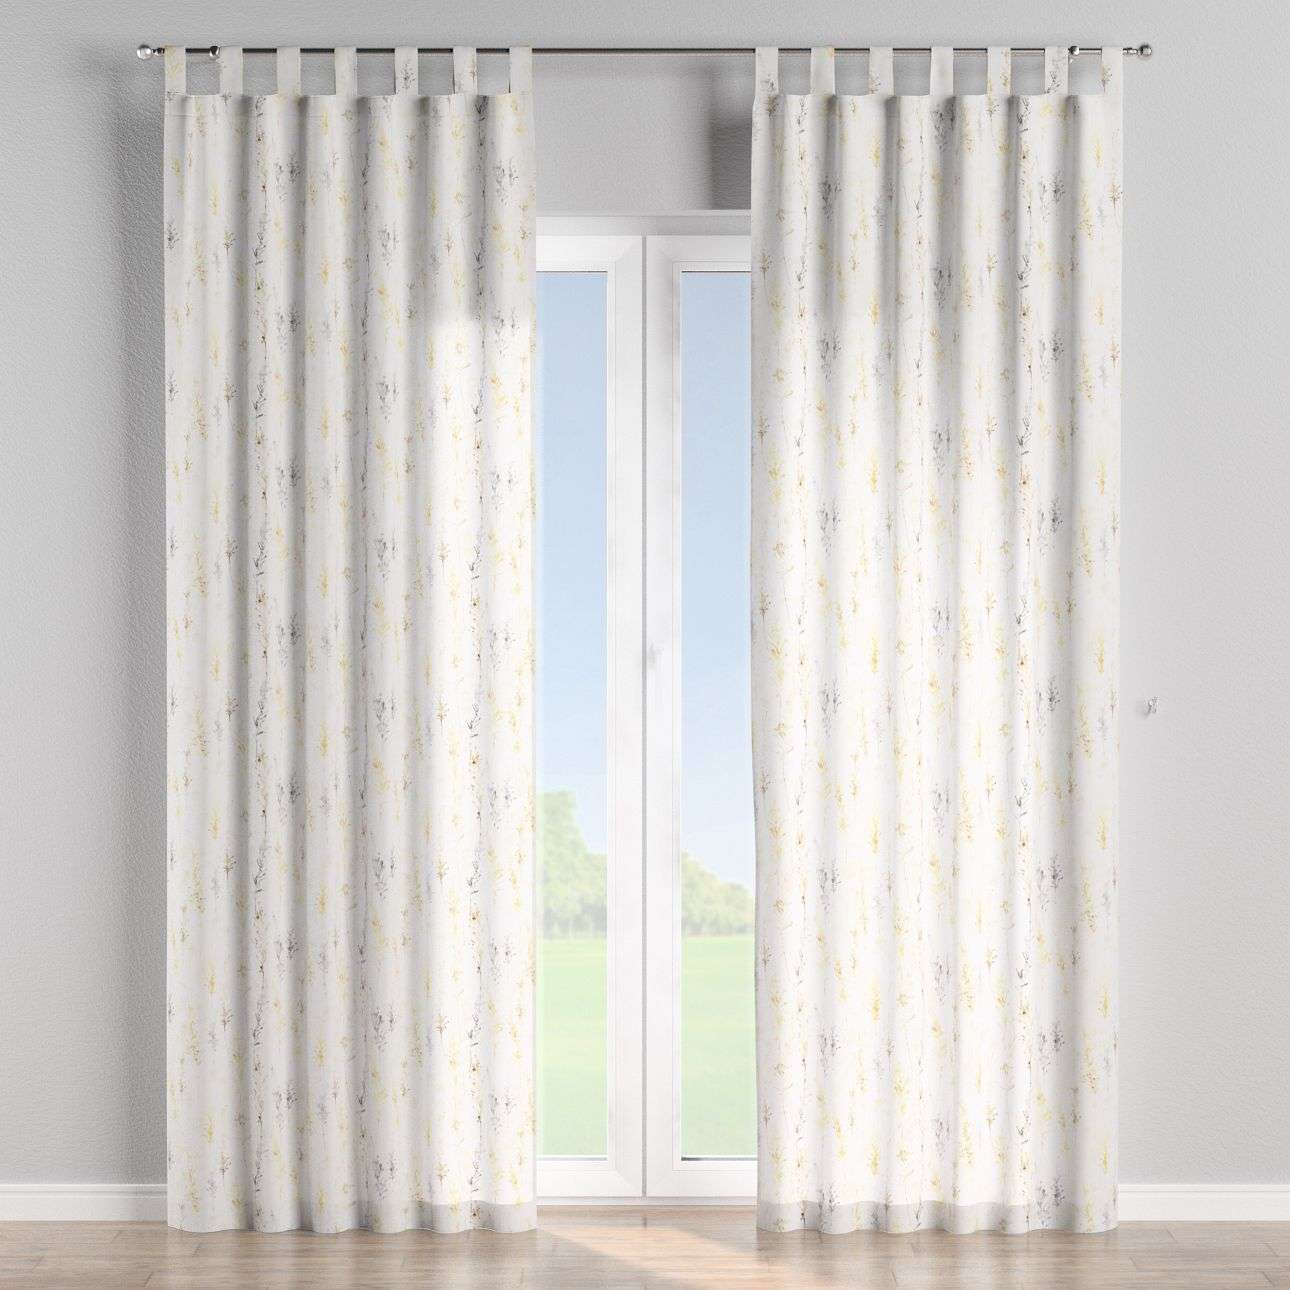 Tab top curtains 130 × 260 cm (51 × 102 inch) in collection Acapulco, fabric: 141-36